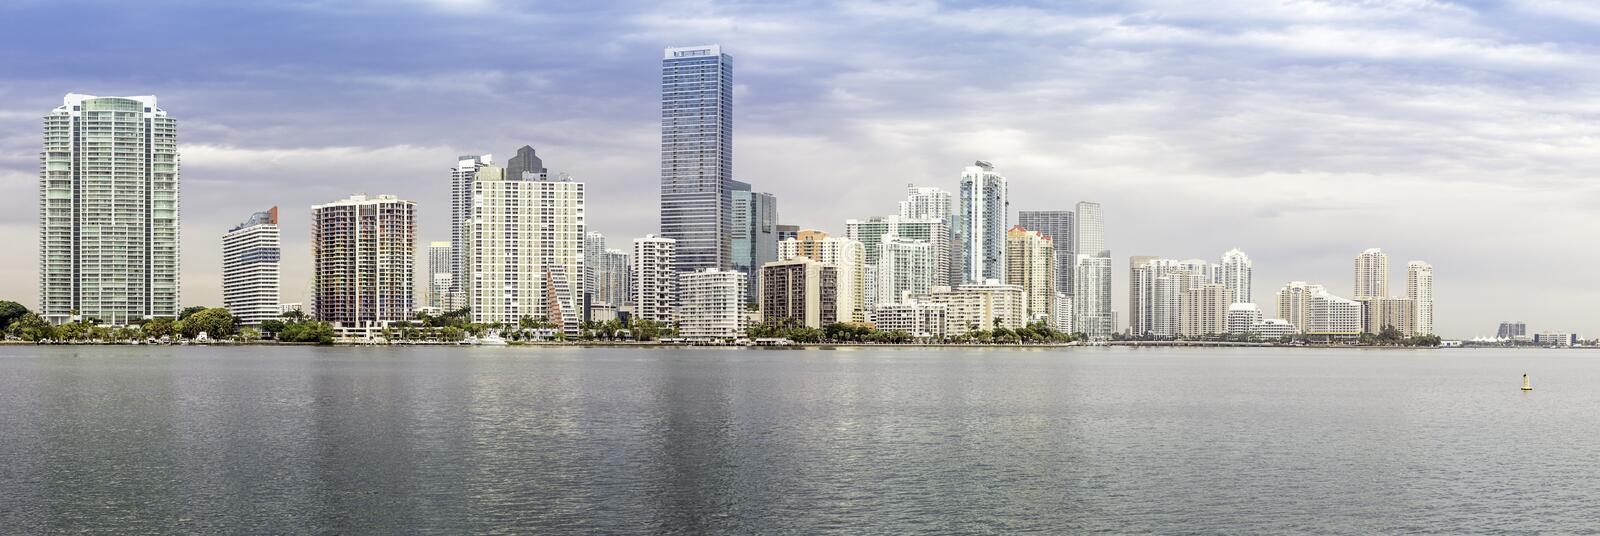 Miami skylinepanorama from Biscayne Bay royalty free stock photography